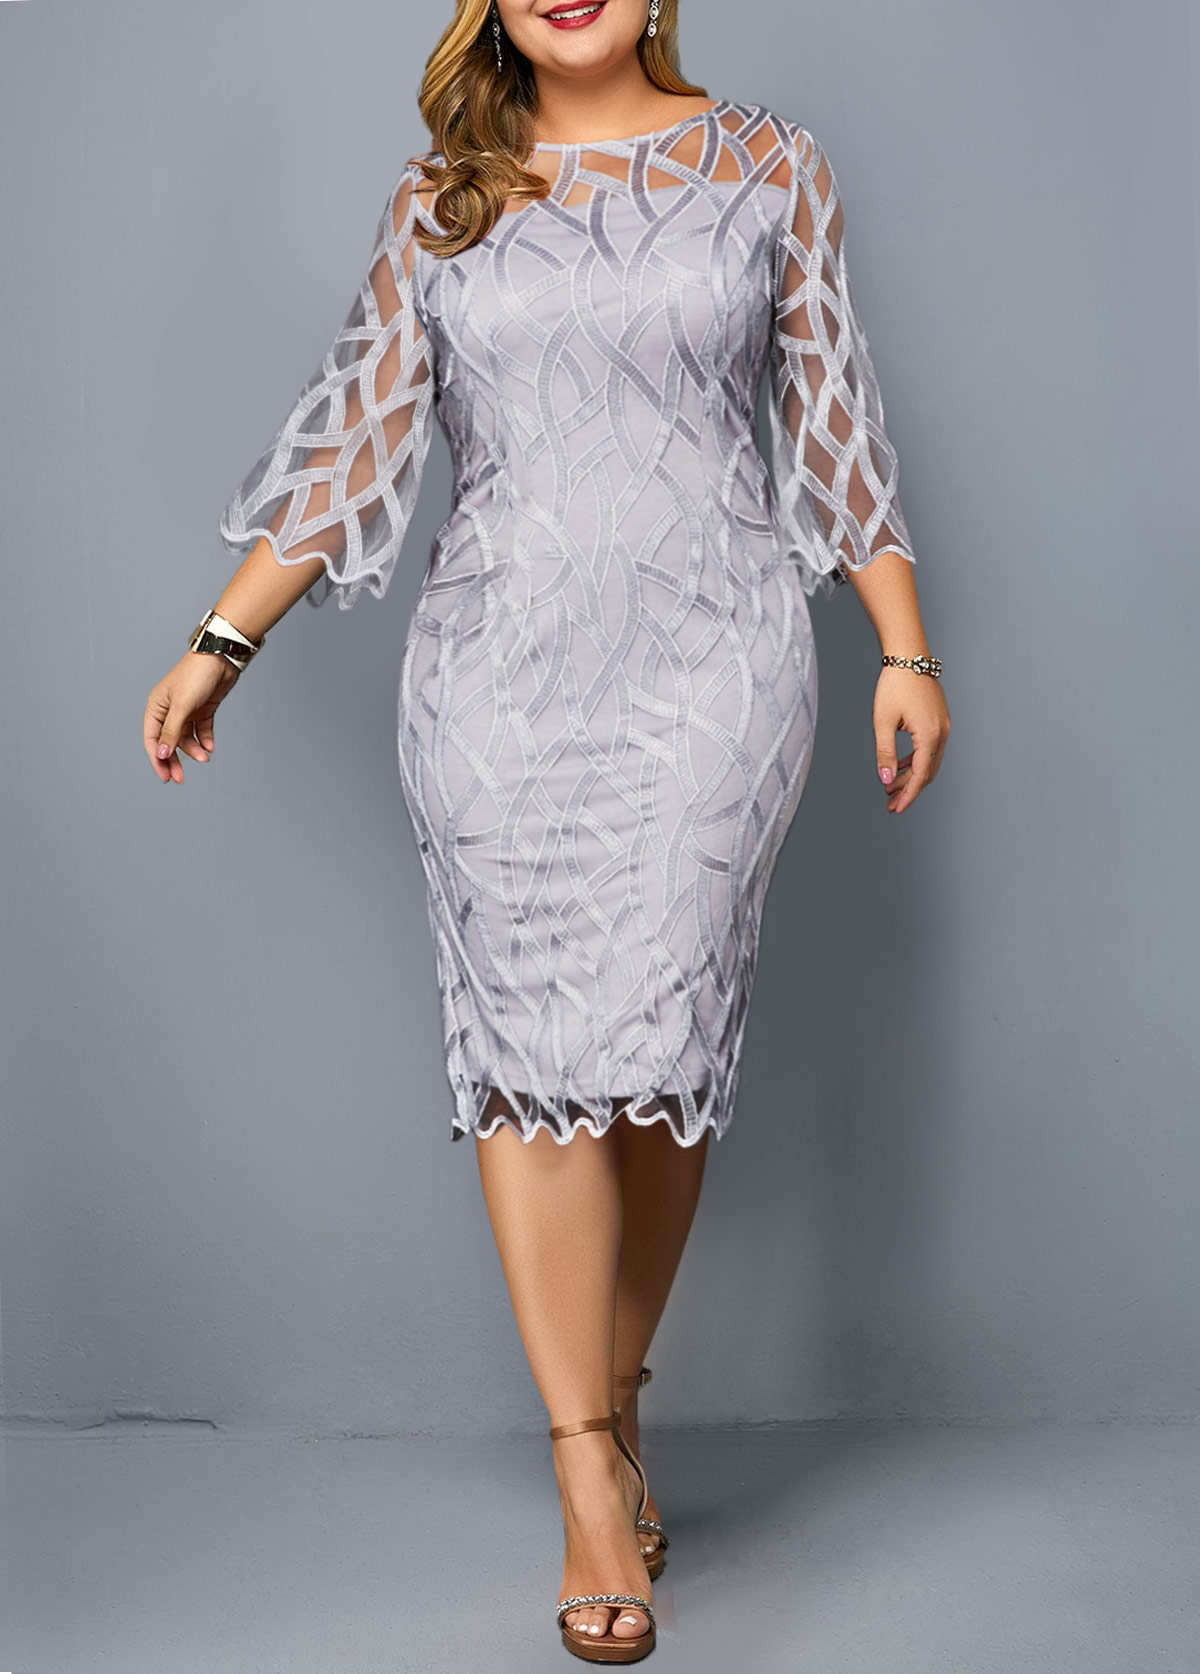 Plus Size Round Neck Light Grey Sheath Dress